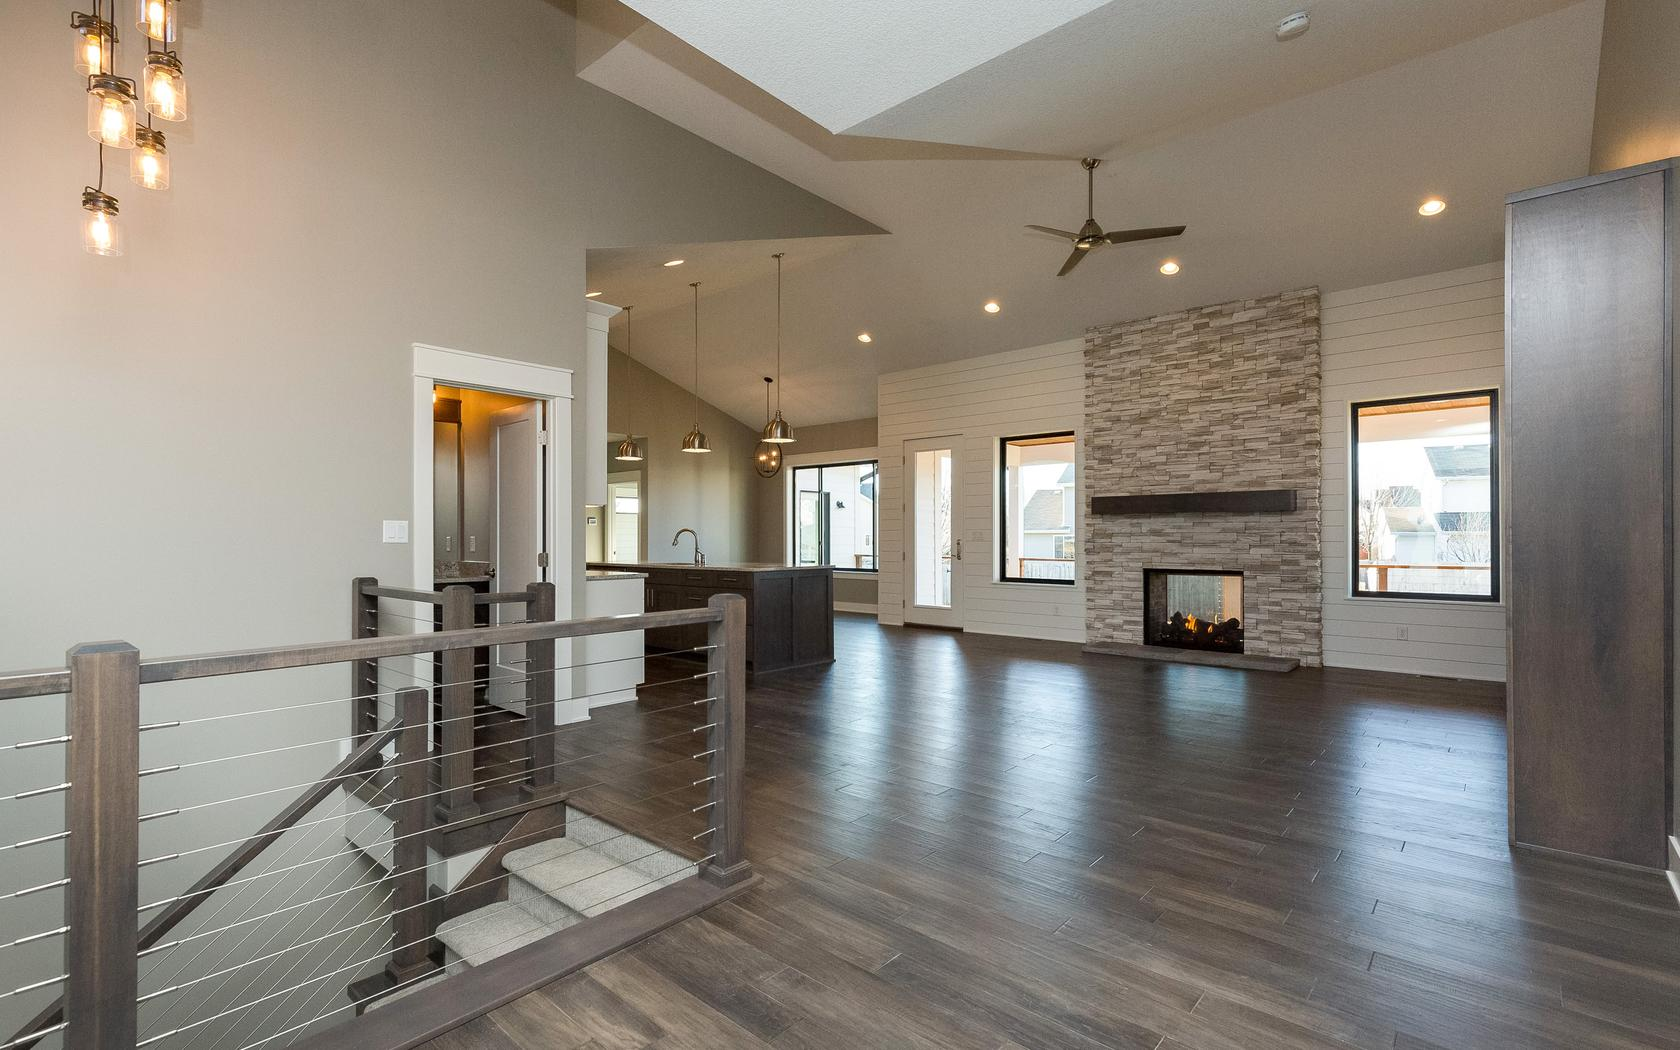 STEP TWO: THE DESIGN - We know that building a home can be a very stressful time in your life. Julie will assist you with all your design choices. Walk-through appointments are an important part of the building process to ensure all your wishes are met.